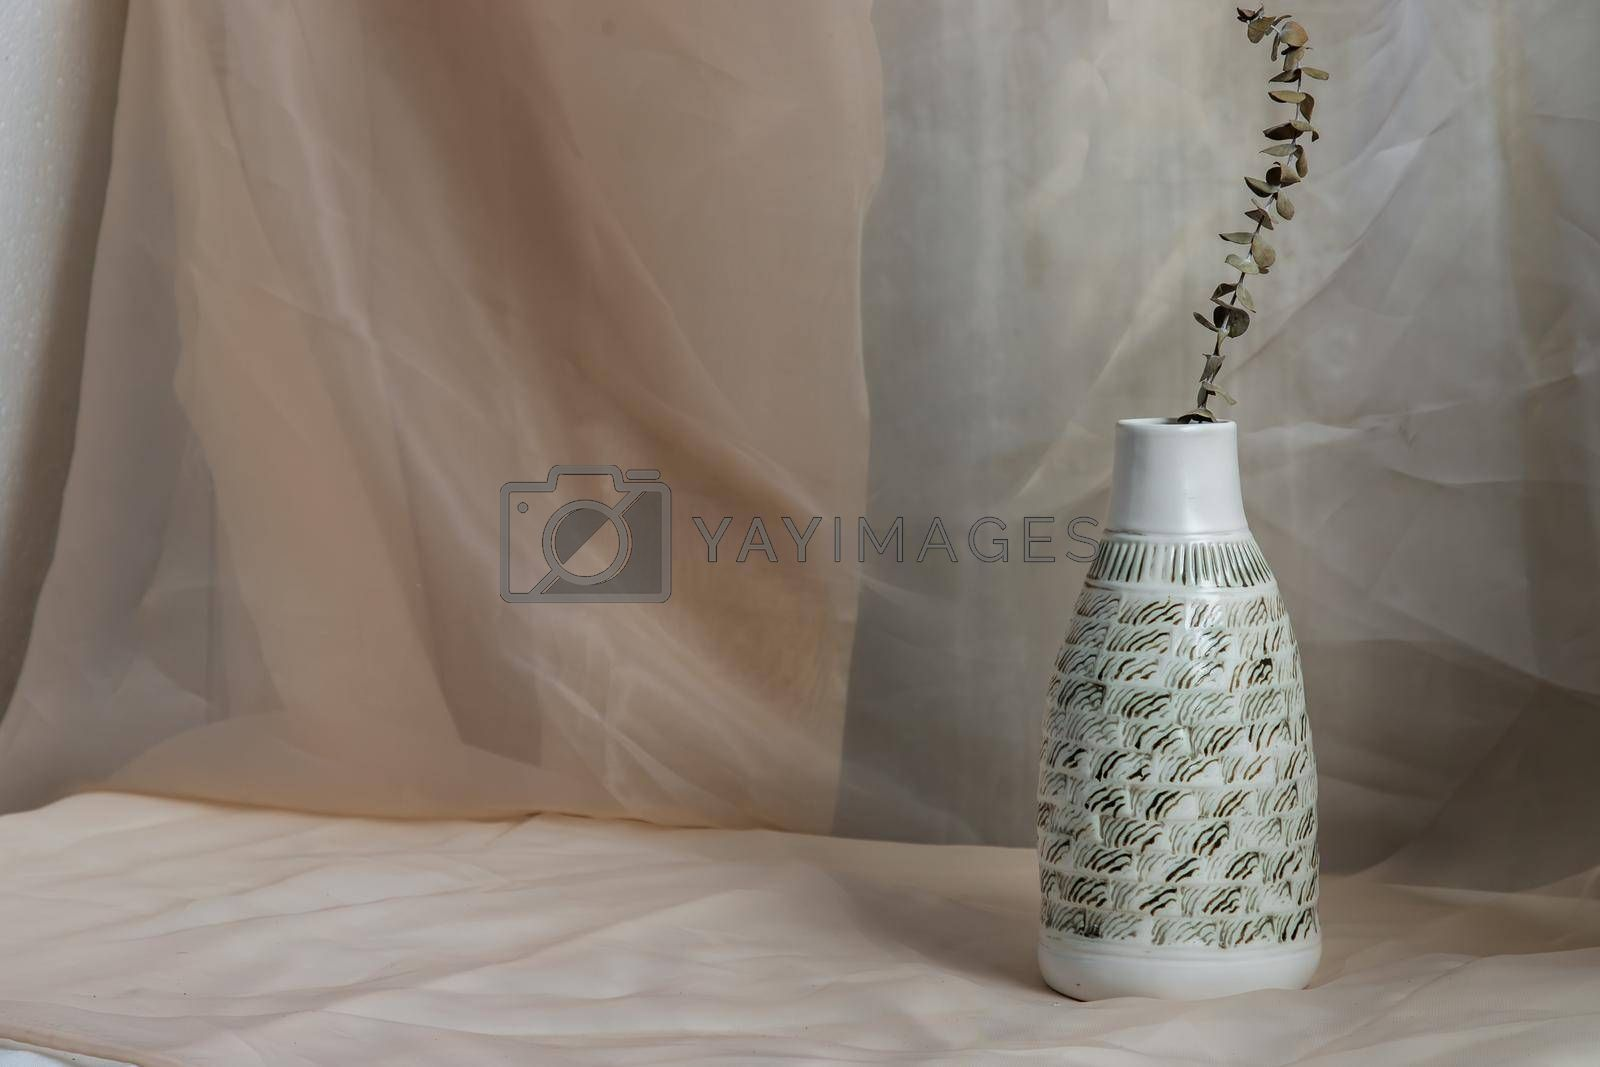 Dried flowers in White ceramic vase bottle shape on Blush textured table cloth. Home decor, Copy space, Selective focus.